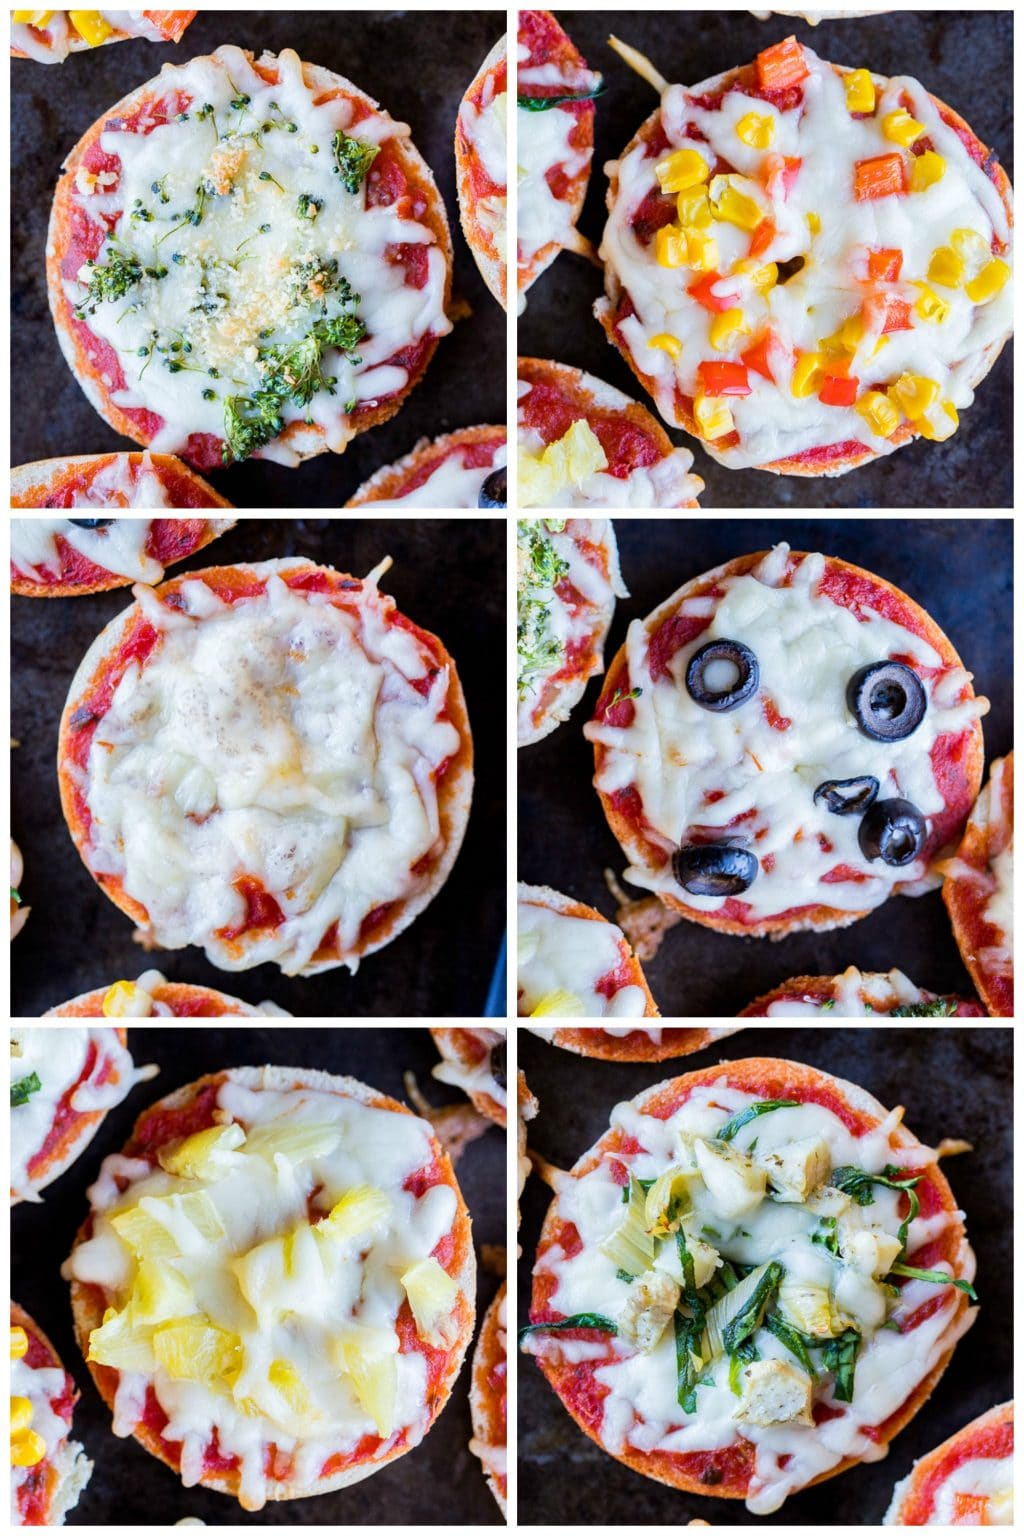 Collage showing different pizza topping ideas for kids